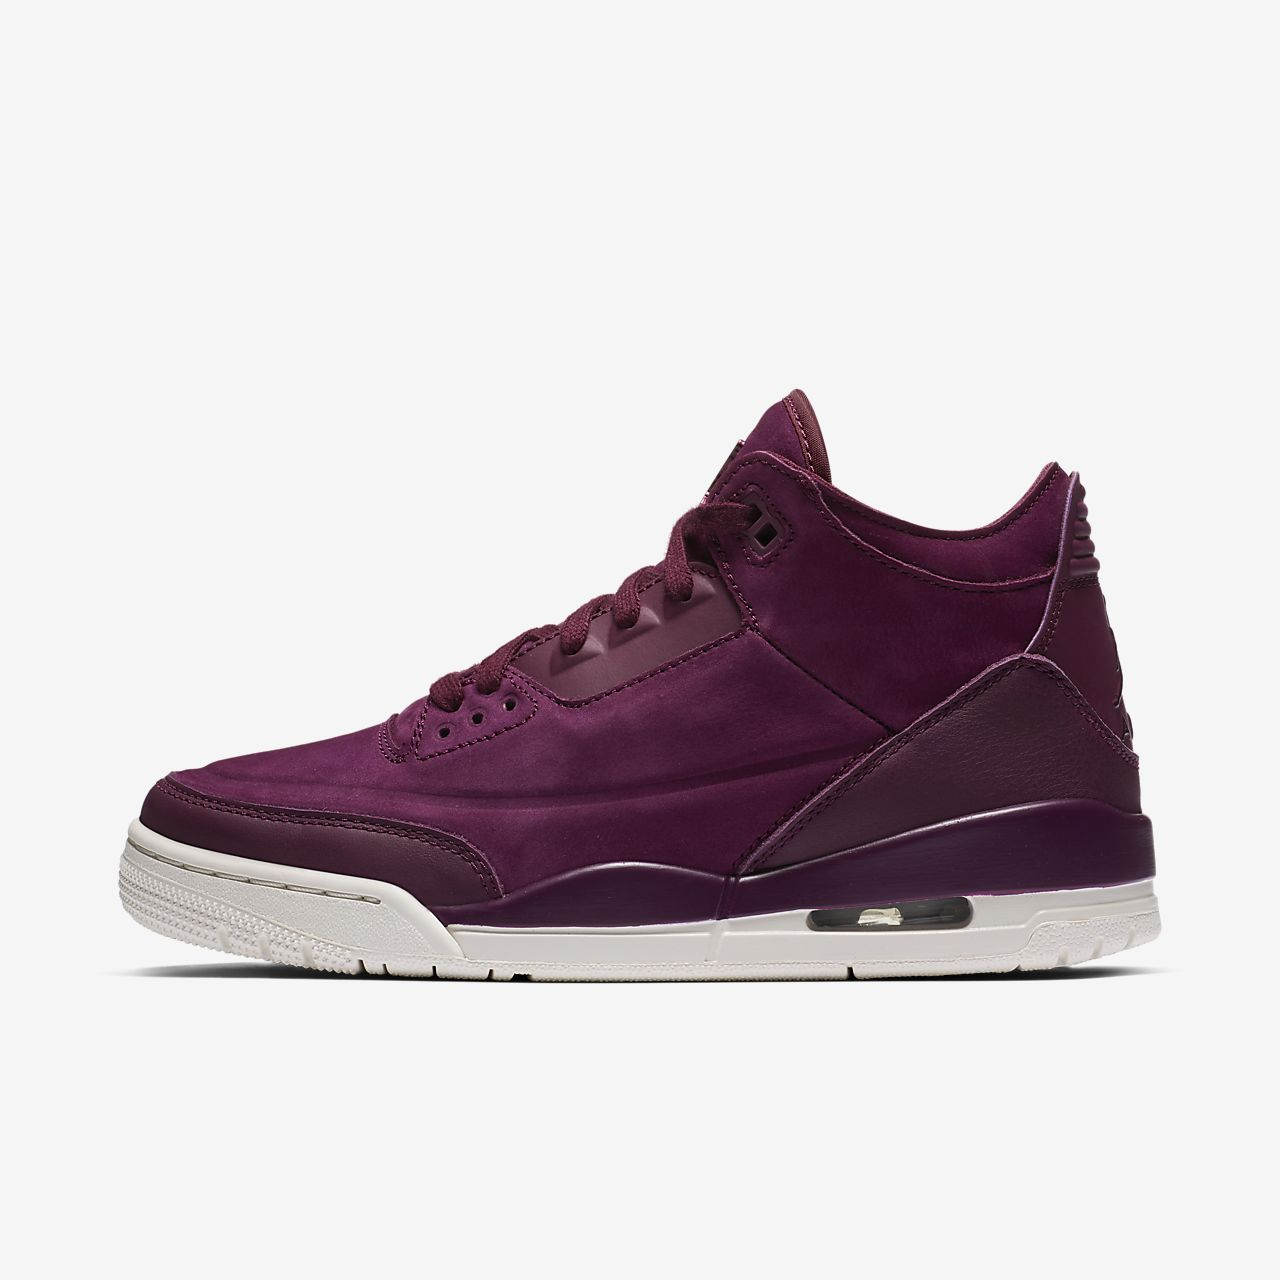 0f7979ea20b44d Air Jordan 3 Retro SE Women s Shoe. Nike.com CA